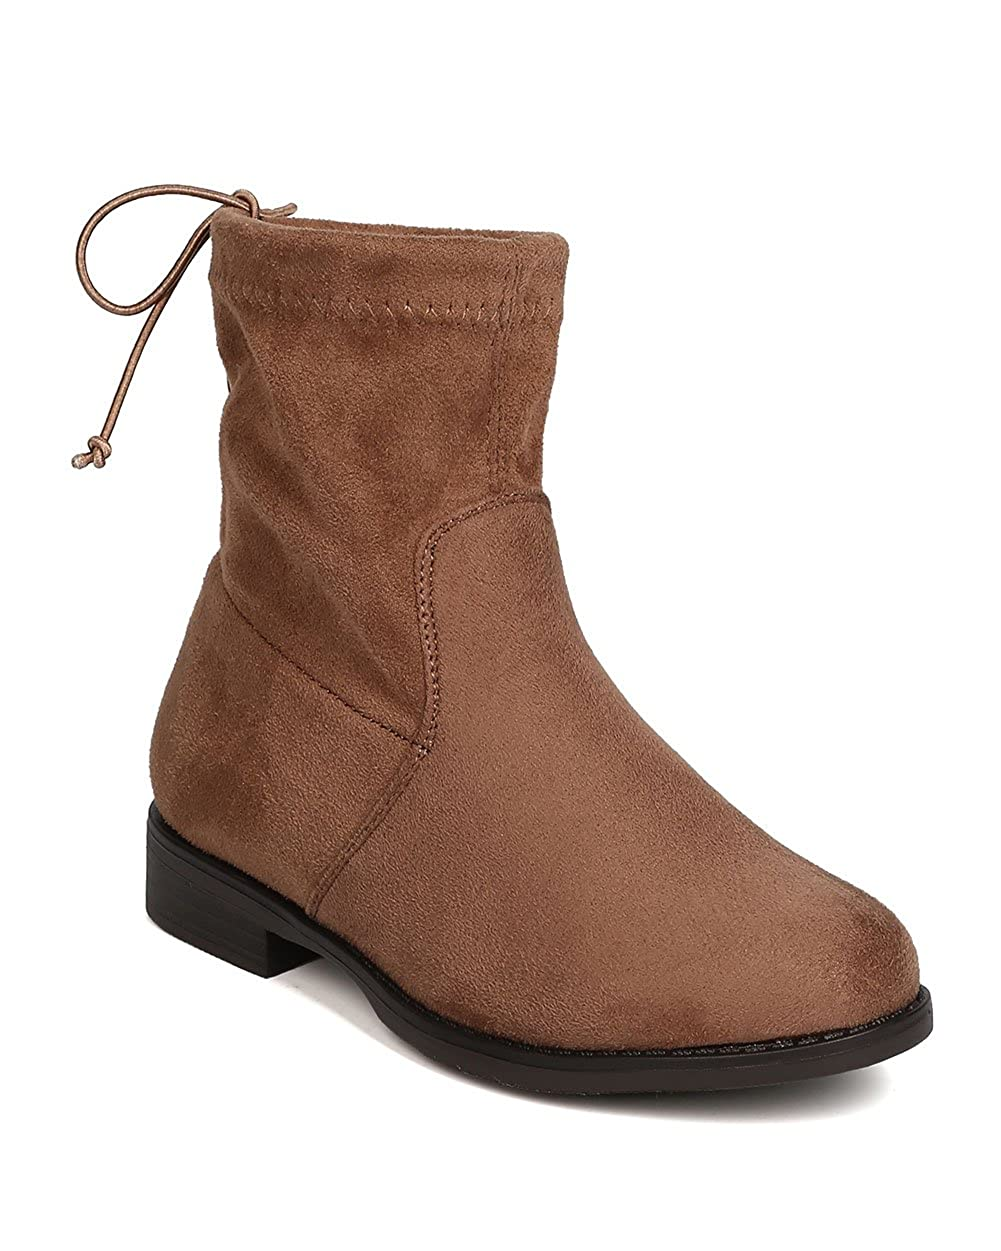 Girls Faux Suede Drawstring Back Tie Riding Bootie FG46 Betani